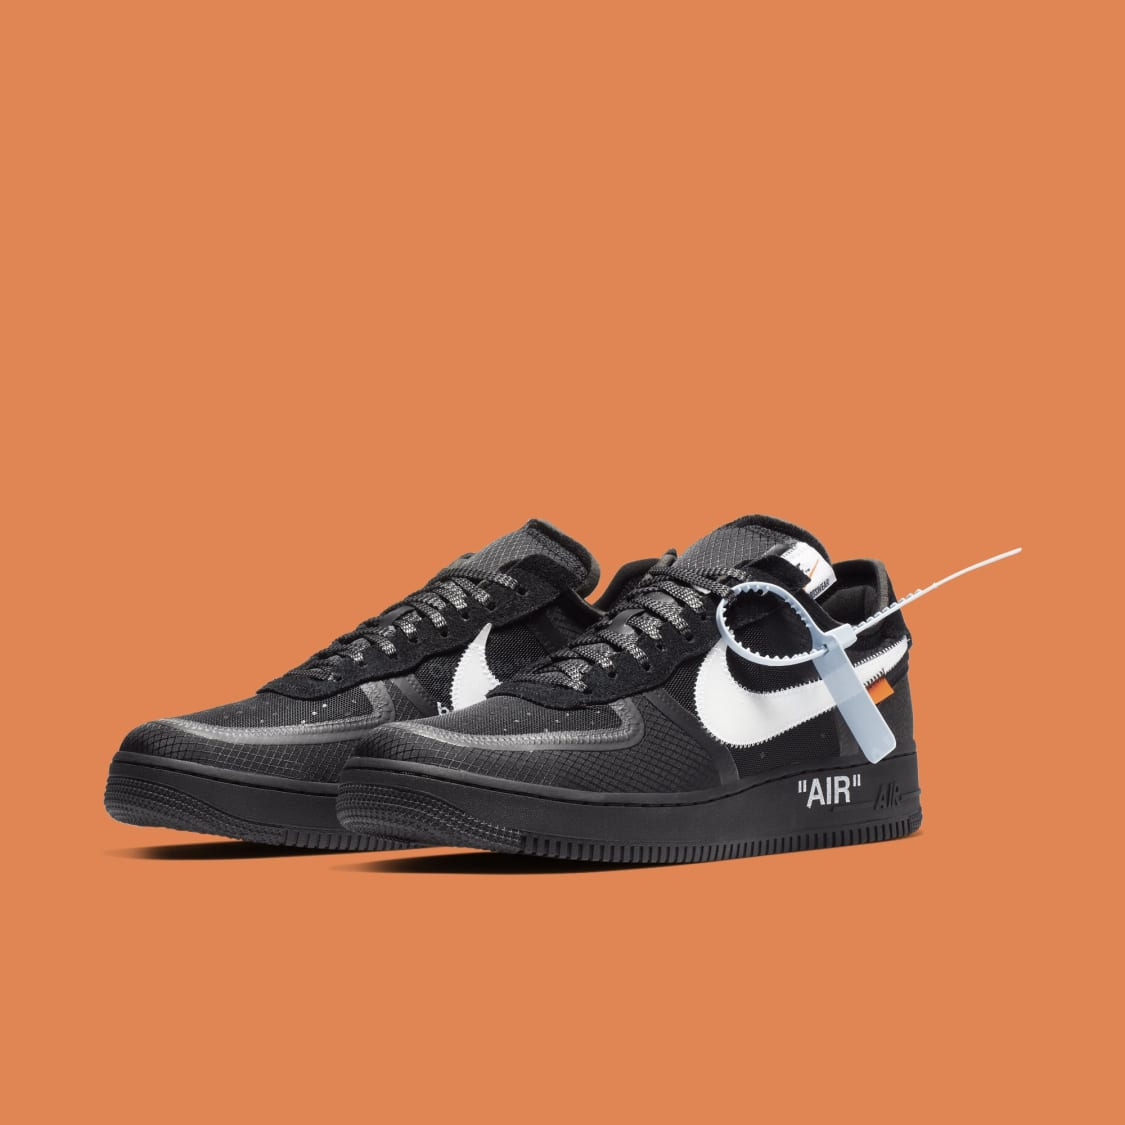 5643cf4598d64 Off-White x Nike Air Force 1 Low  Black White  AO4606-001 Release ...